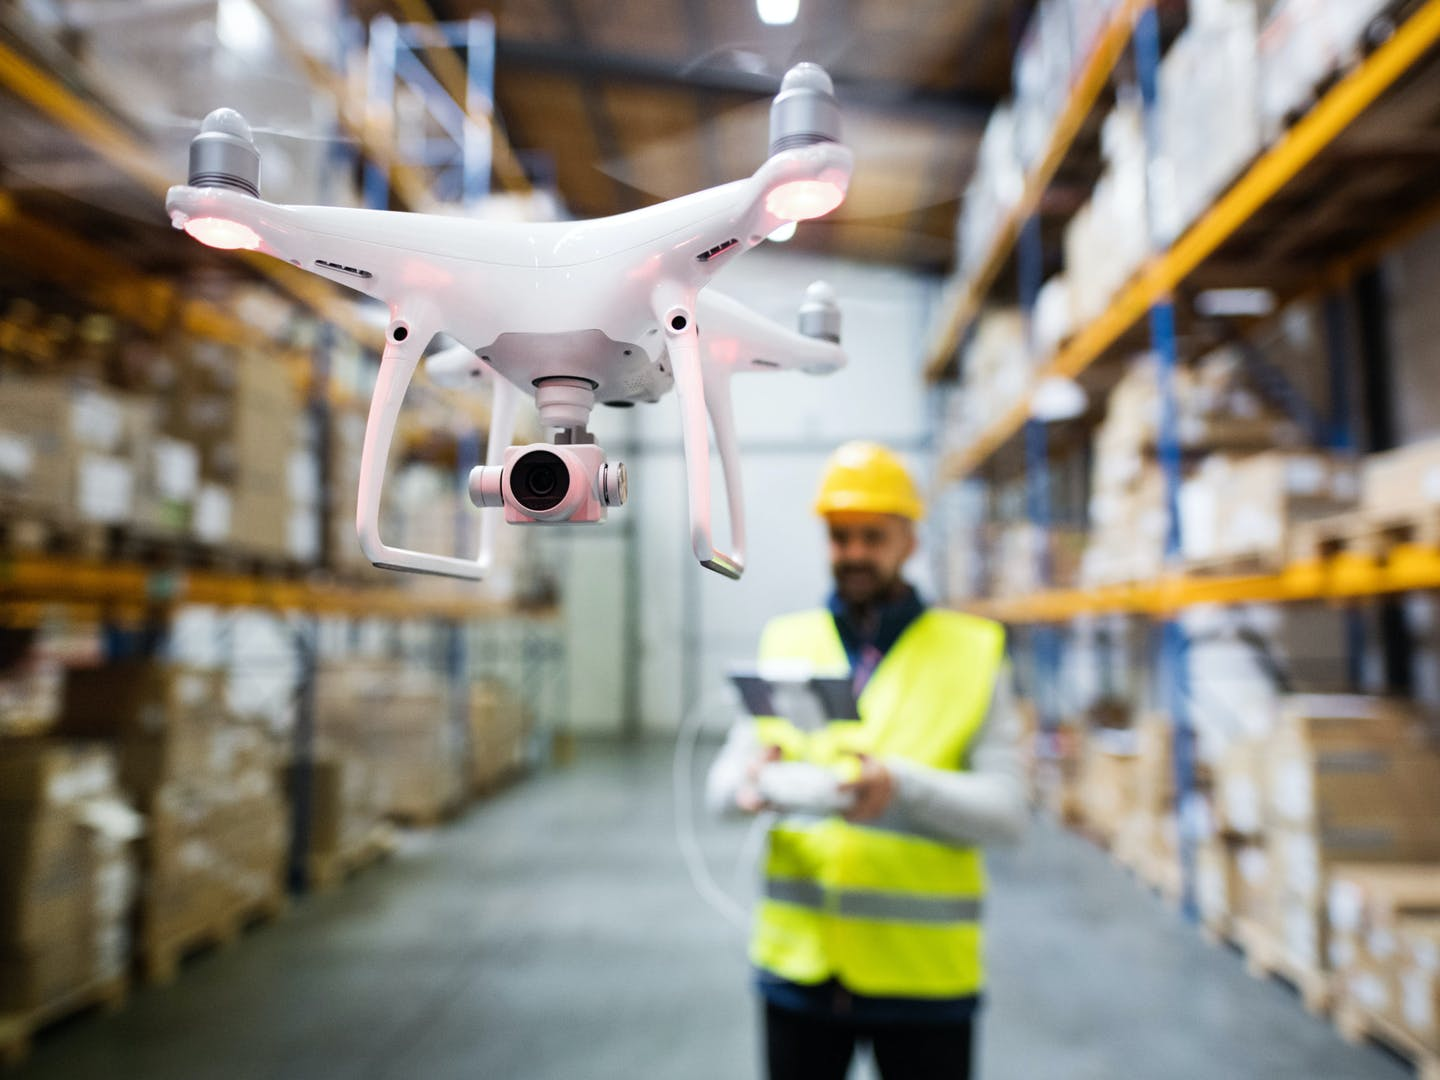 Should we trust drones with warehouse management